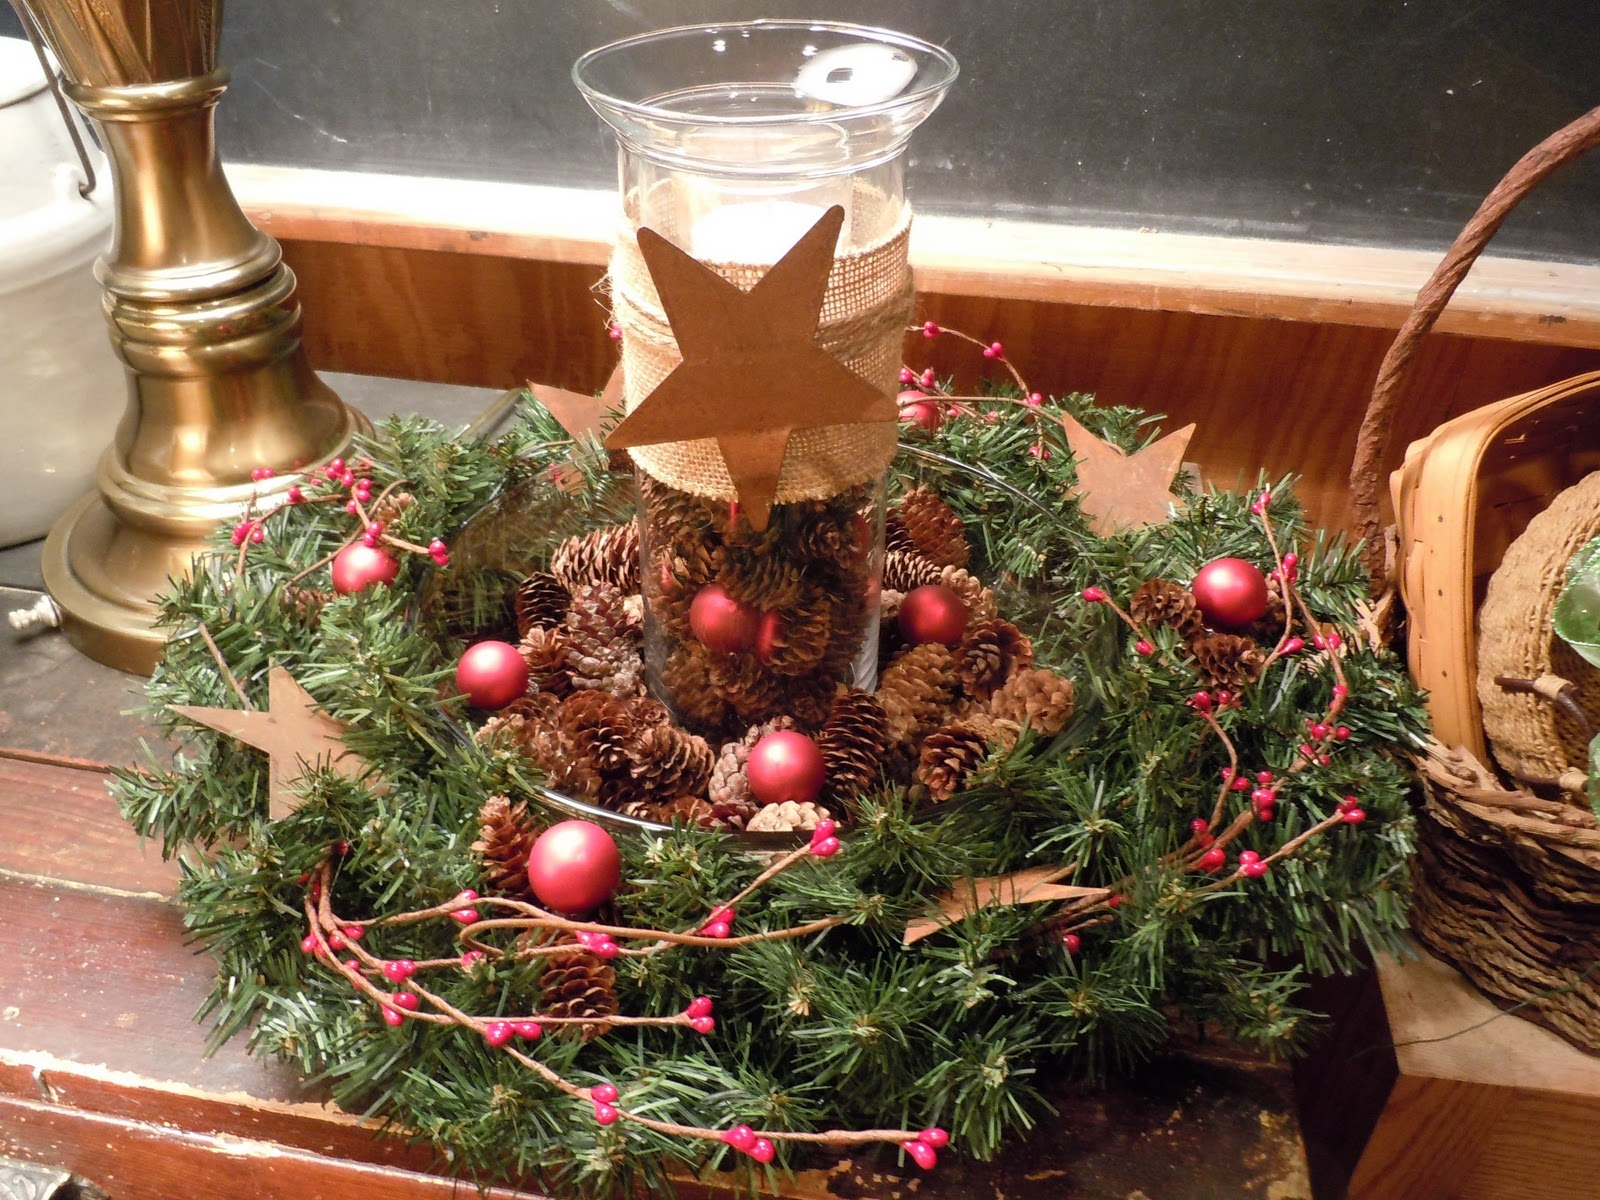 Kitchen Table Christmas Centerpieces Kitchen Table Christmas Centerpieces Natural Welcome Best Place